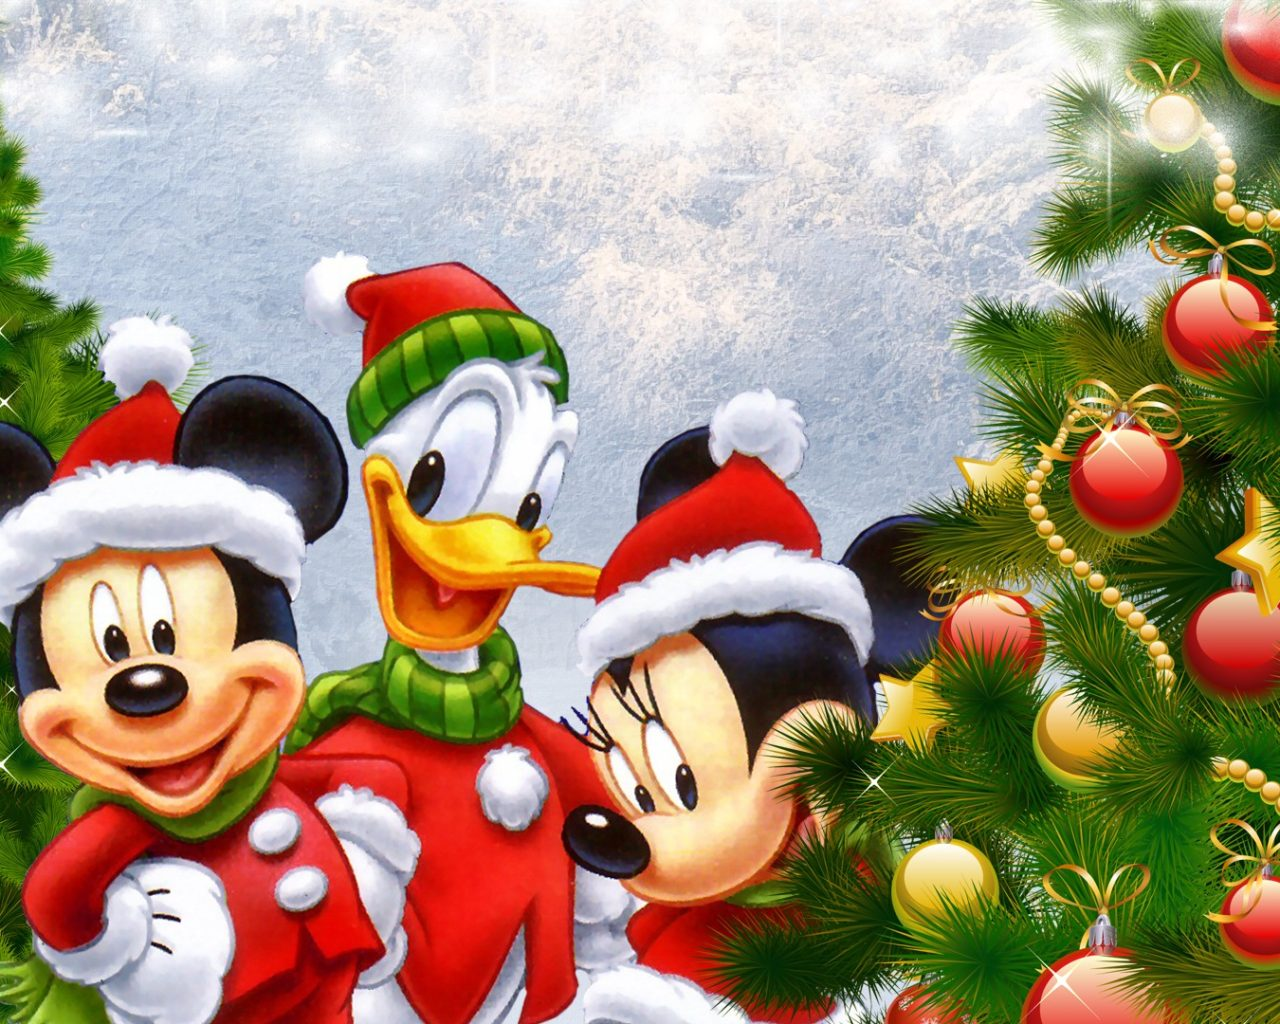 Daisy Iphone Wallpaper Disney Donald Duck Mickey And Minnie Mouse Christmas Tree